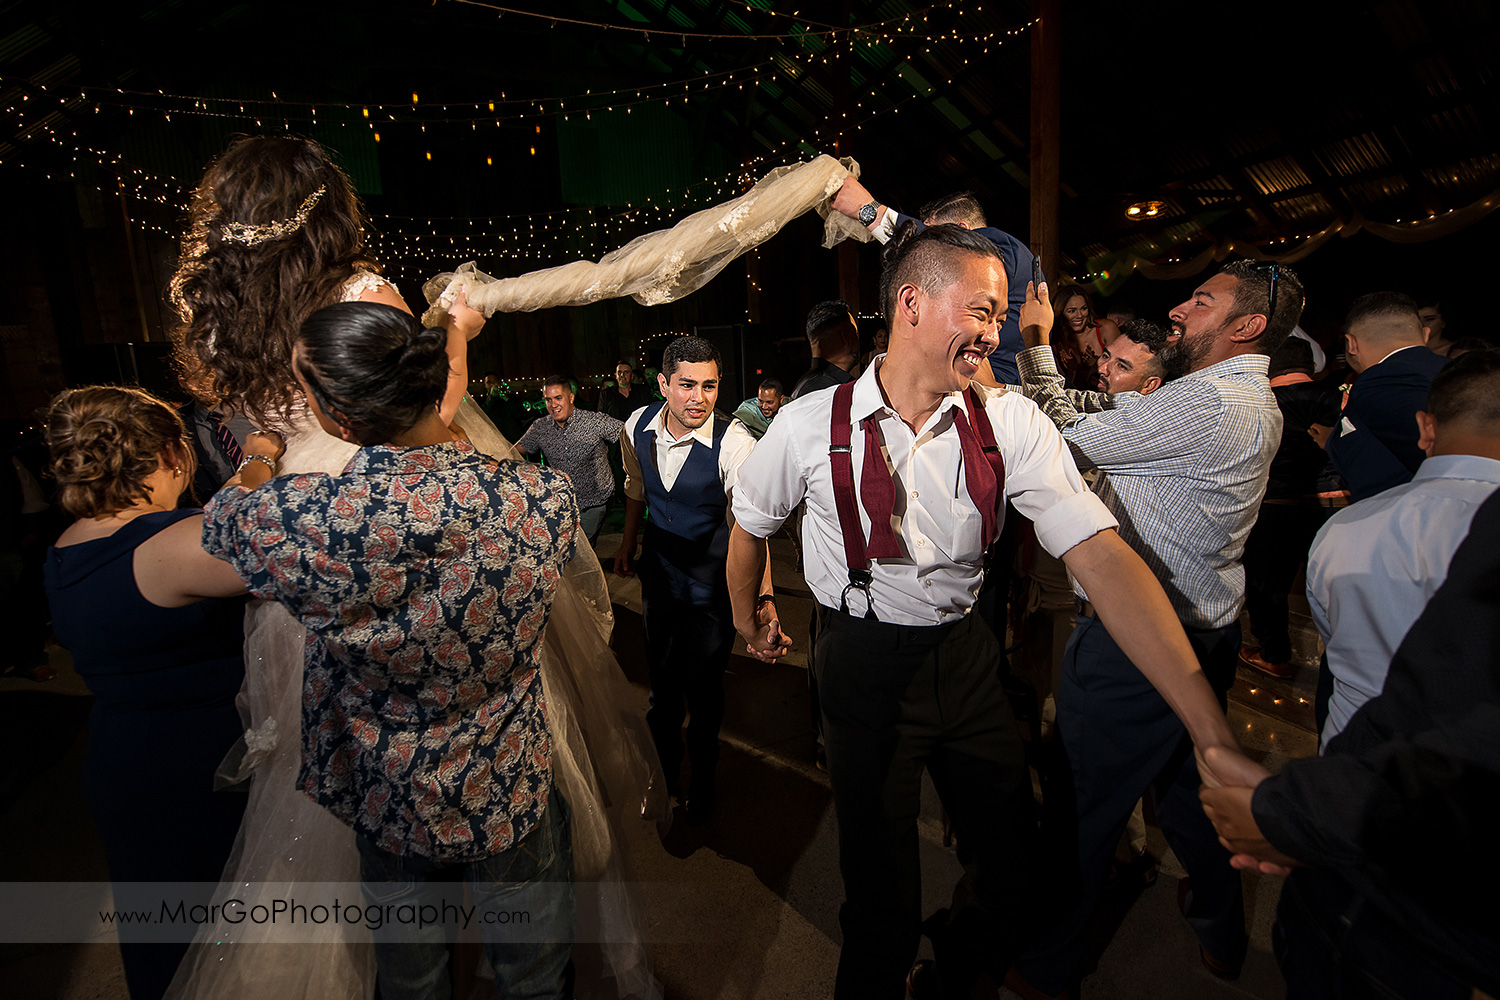 bride and groom standing on chairs during La Vibora de La Mar - the Sea Snake dance with male part of wedding guests at Taber Ranch Vineyards